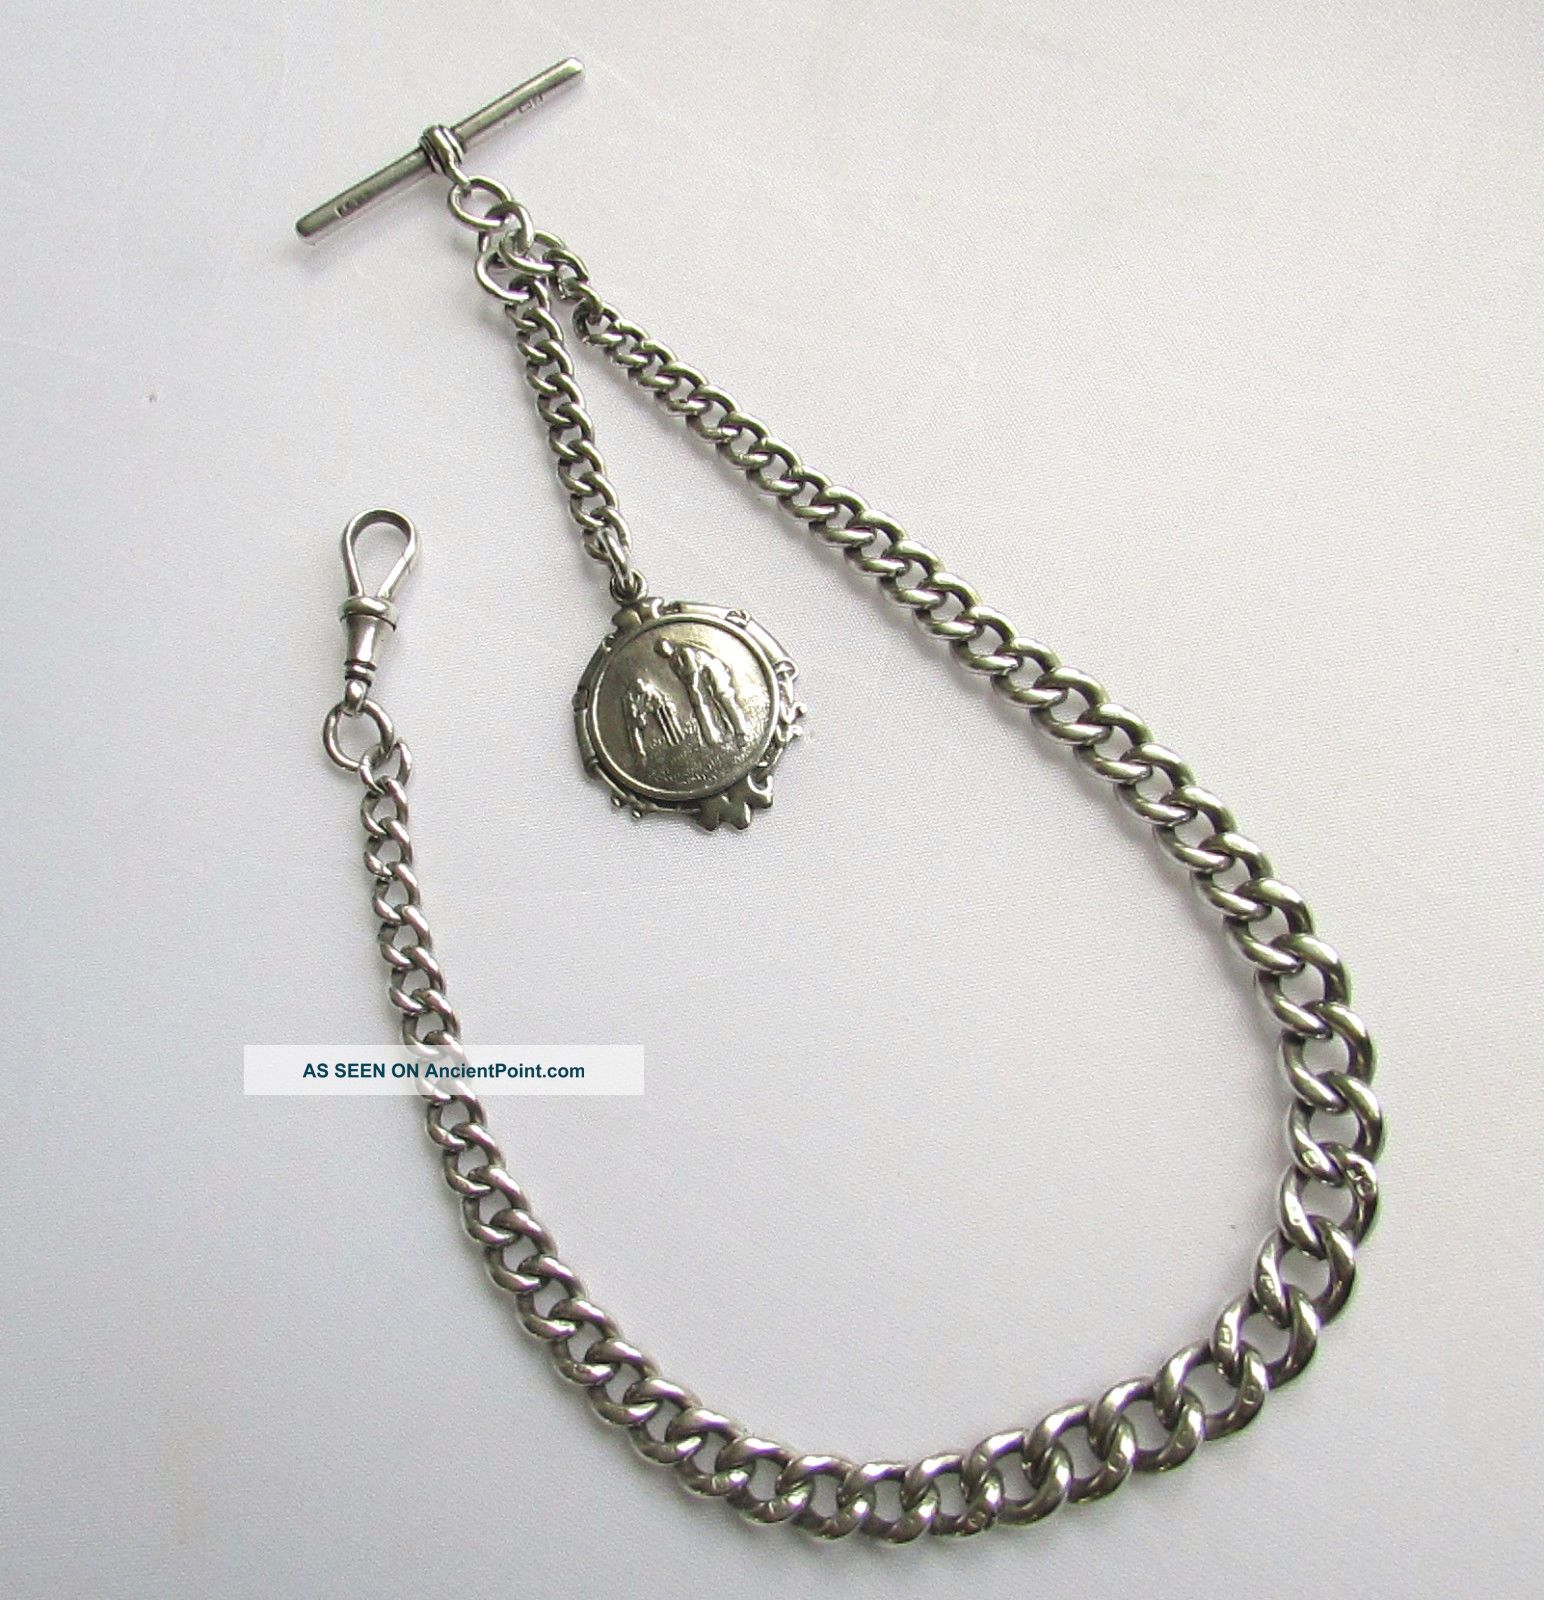 Old Antique Sterling Silver Albert Watch Chain & Cricket Fob 49 Grams Pocket Watches/Chains/Fobs photo